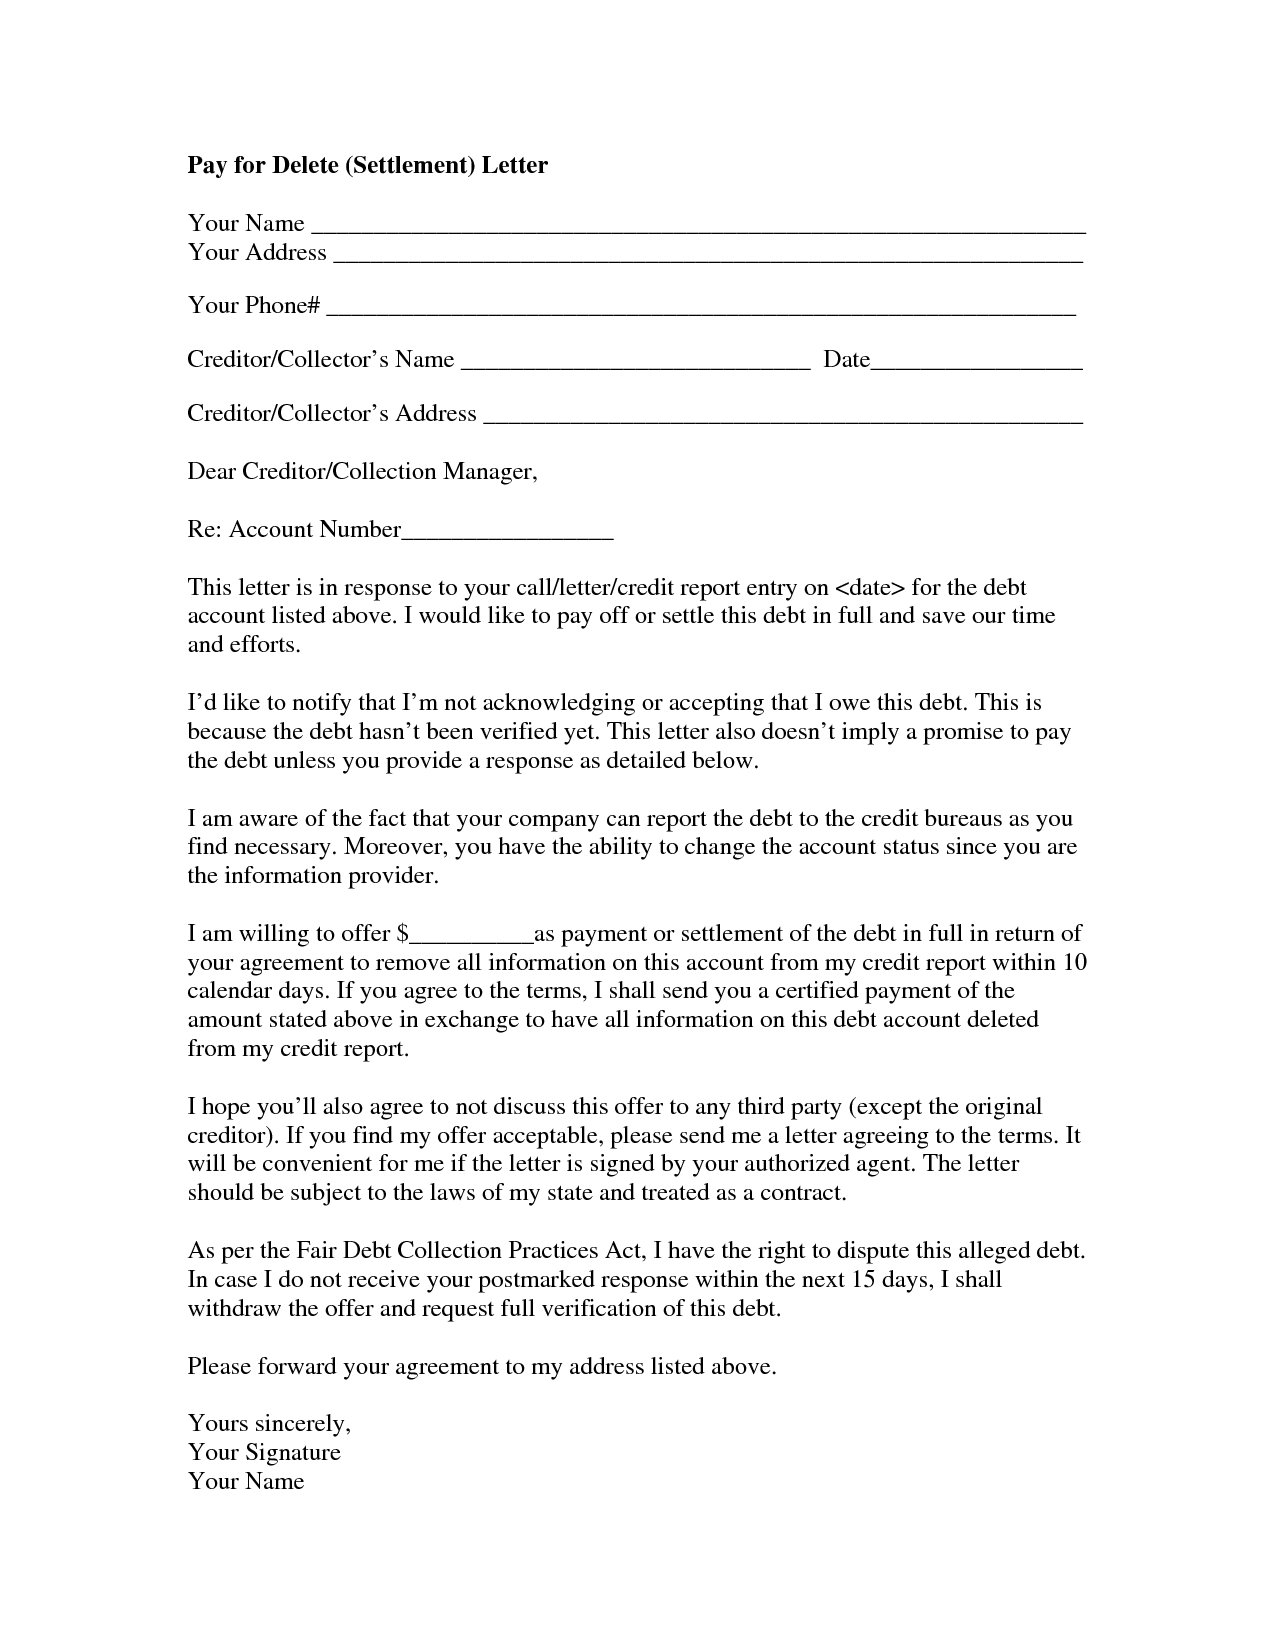 Settlement Offer Letter Template - How to Write A Settlement Letter Letter format formal Sample